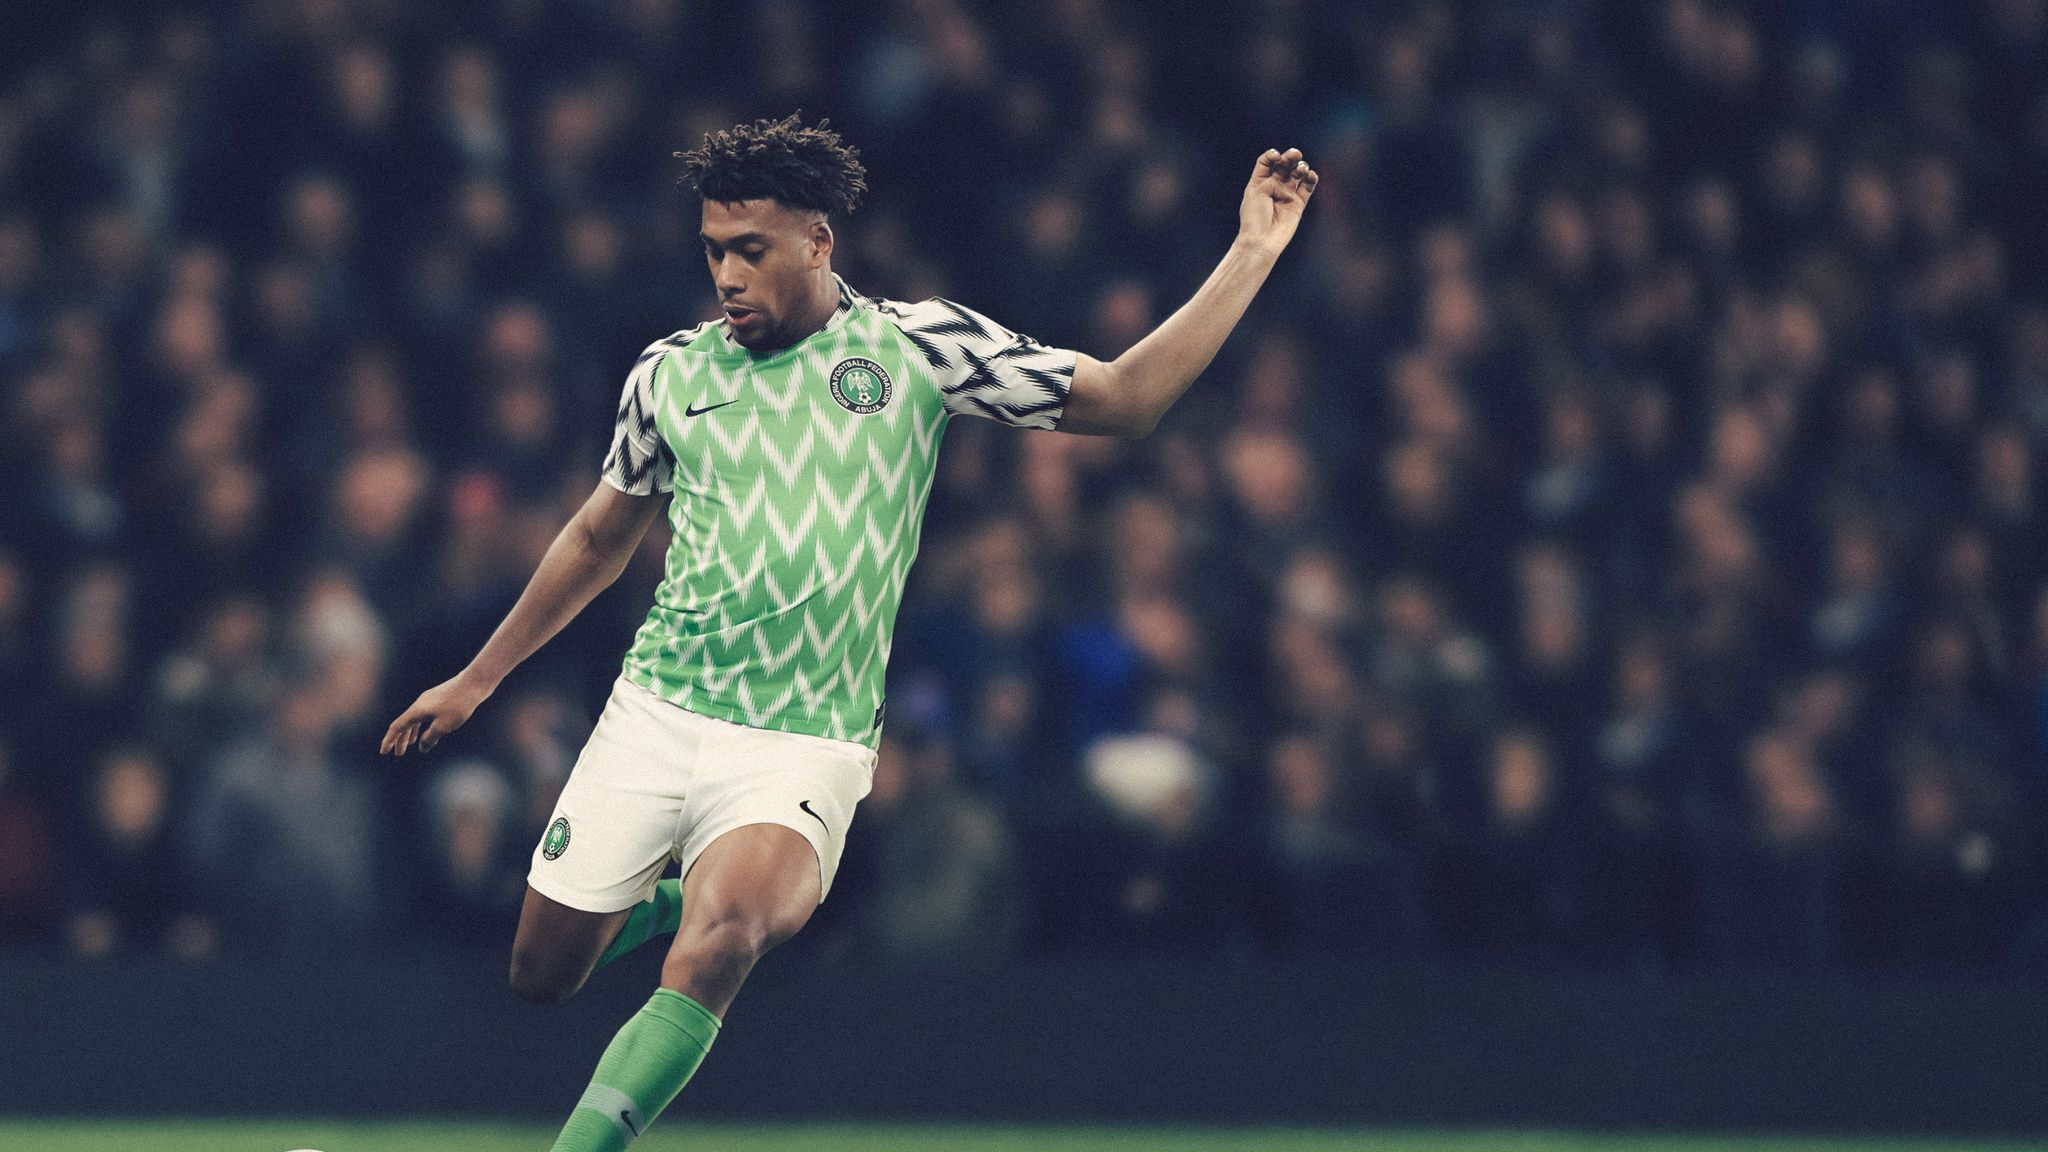 3f9d2bc986d World Cup 2018 kits revealed: England, Brazil, Nigeria, Spain, Belgium,  Russia and more | Football News | Sky Sports